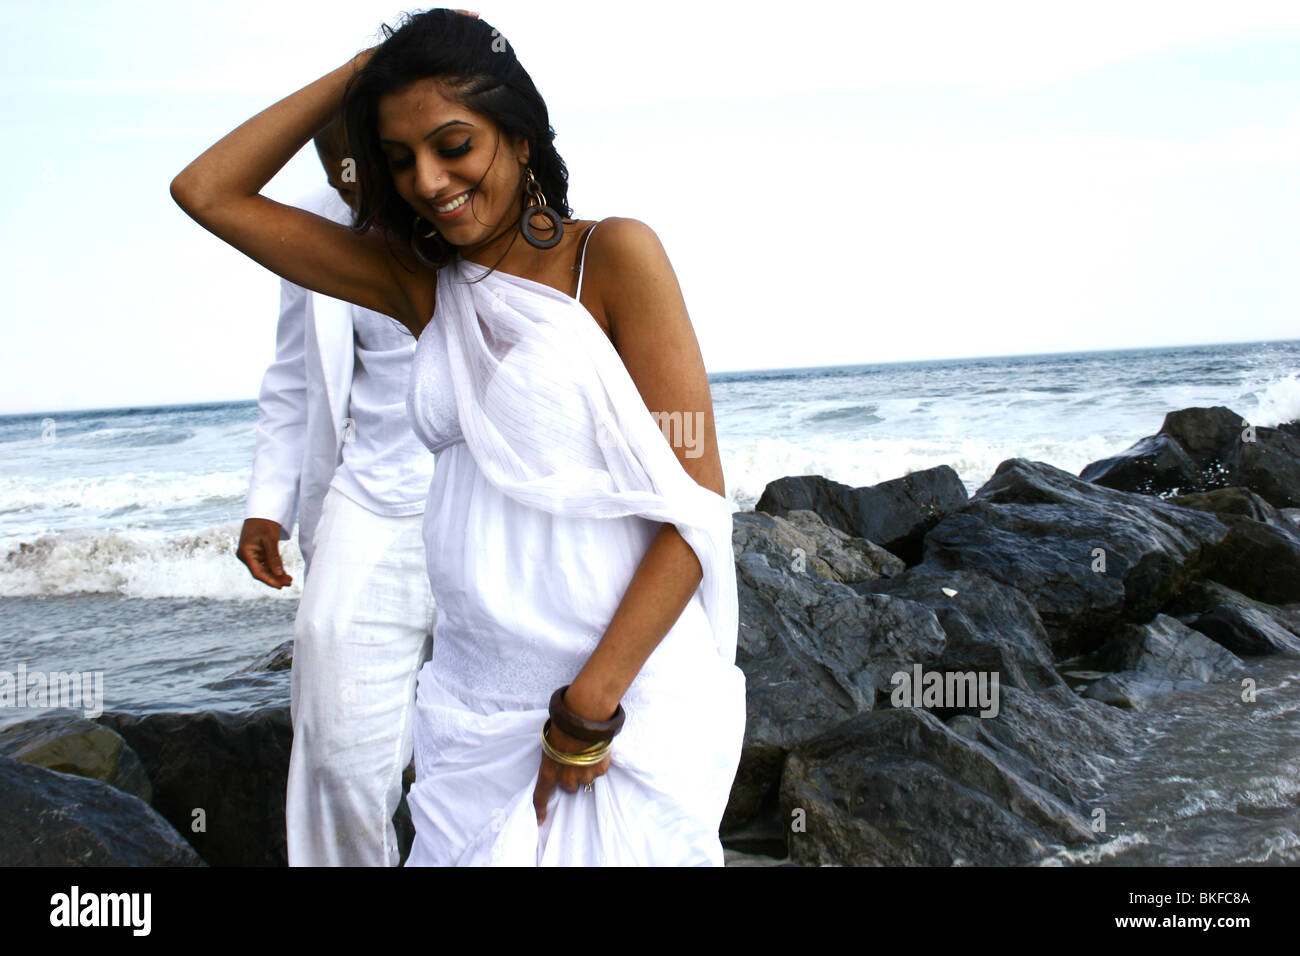 A Happy Looking South Asian American Desi Woman Pulling Back Her